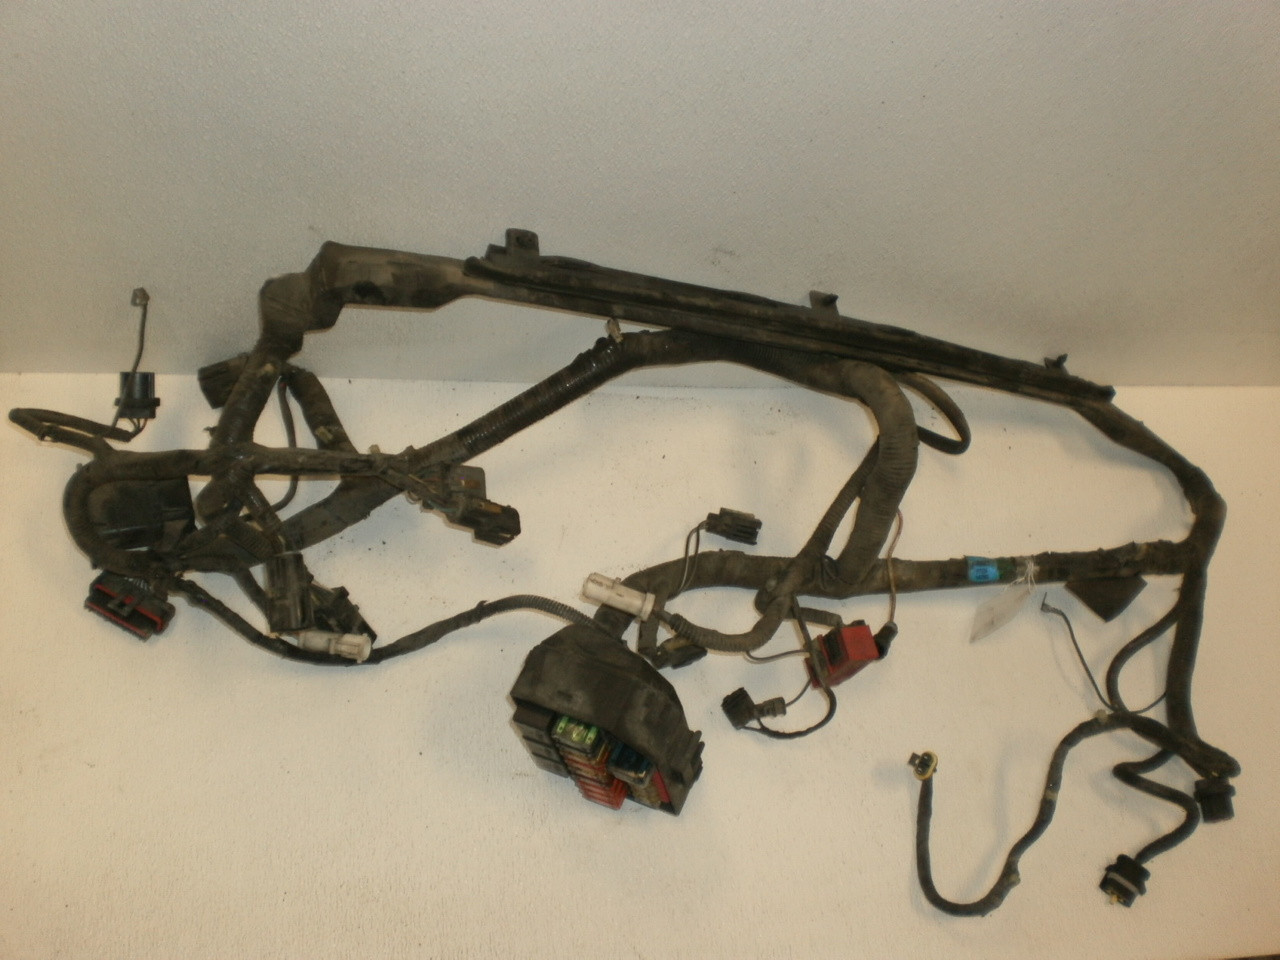 1994 1998 ford mustang 3 8 water pump pulley serpentine belt lx v6 f6zz 2004 Mustang Wiring Harness 1997 ford mustang engine bay fuse box block power distribution wire harness w abs anti lock brake 4 6 f7zb 14290 cc